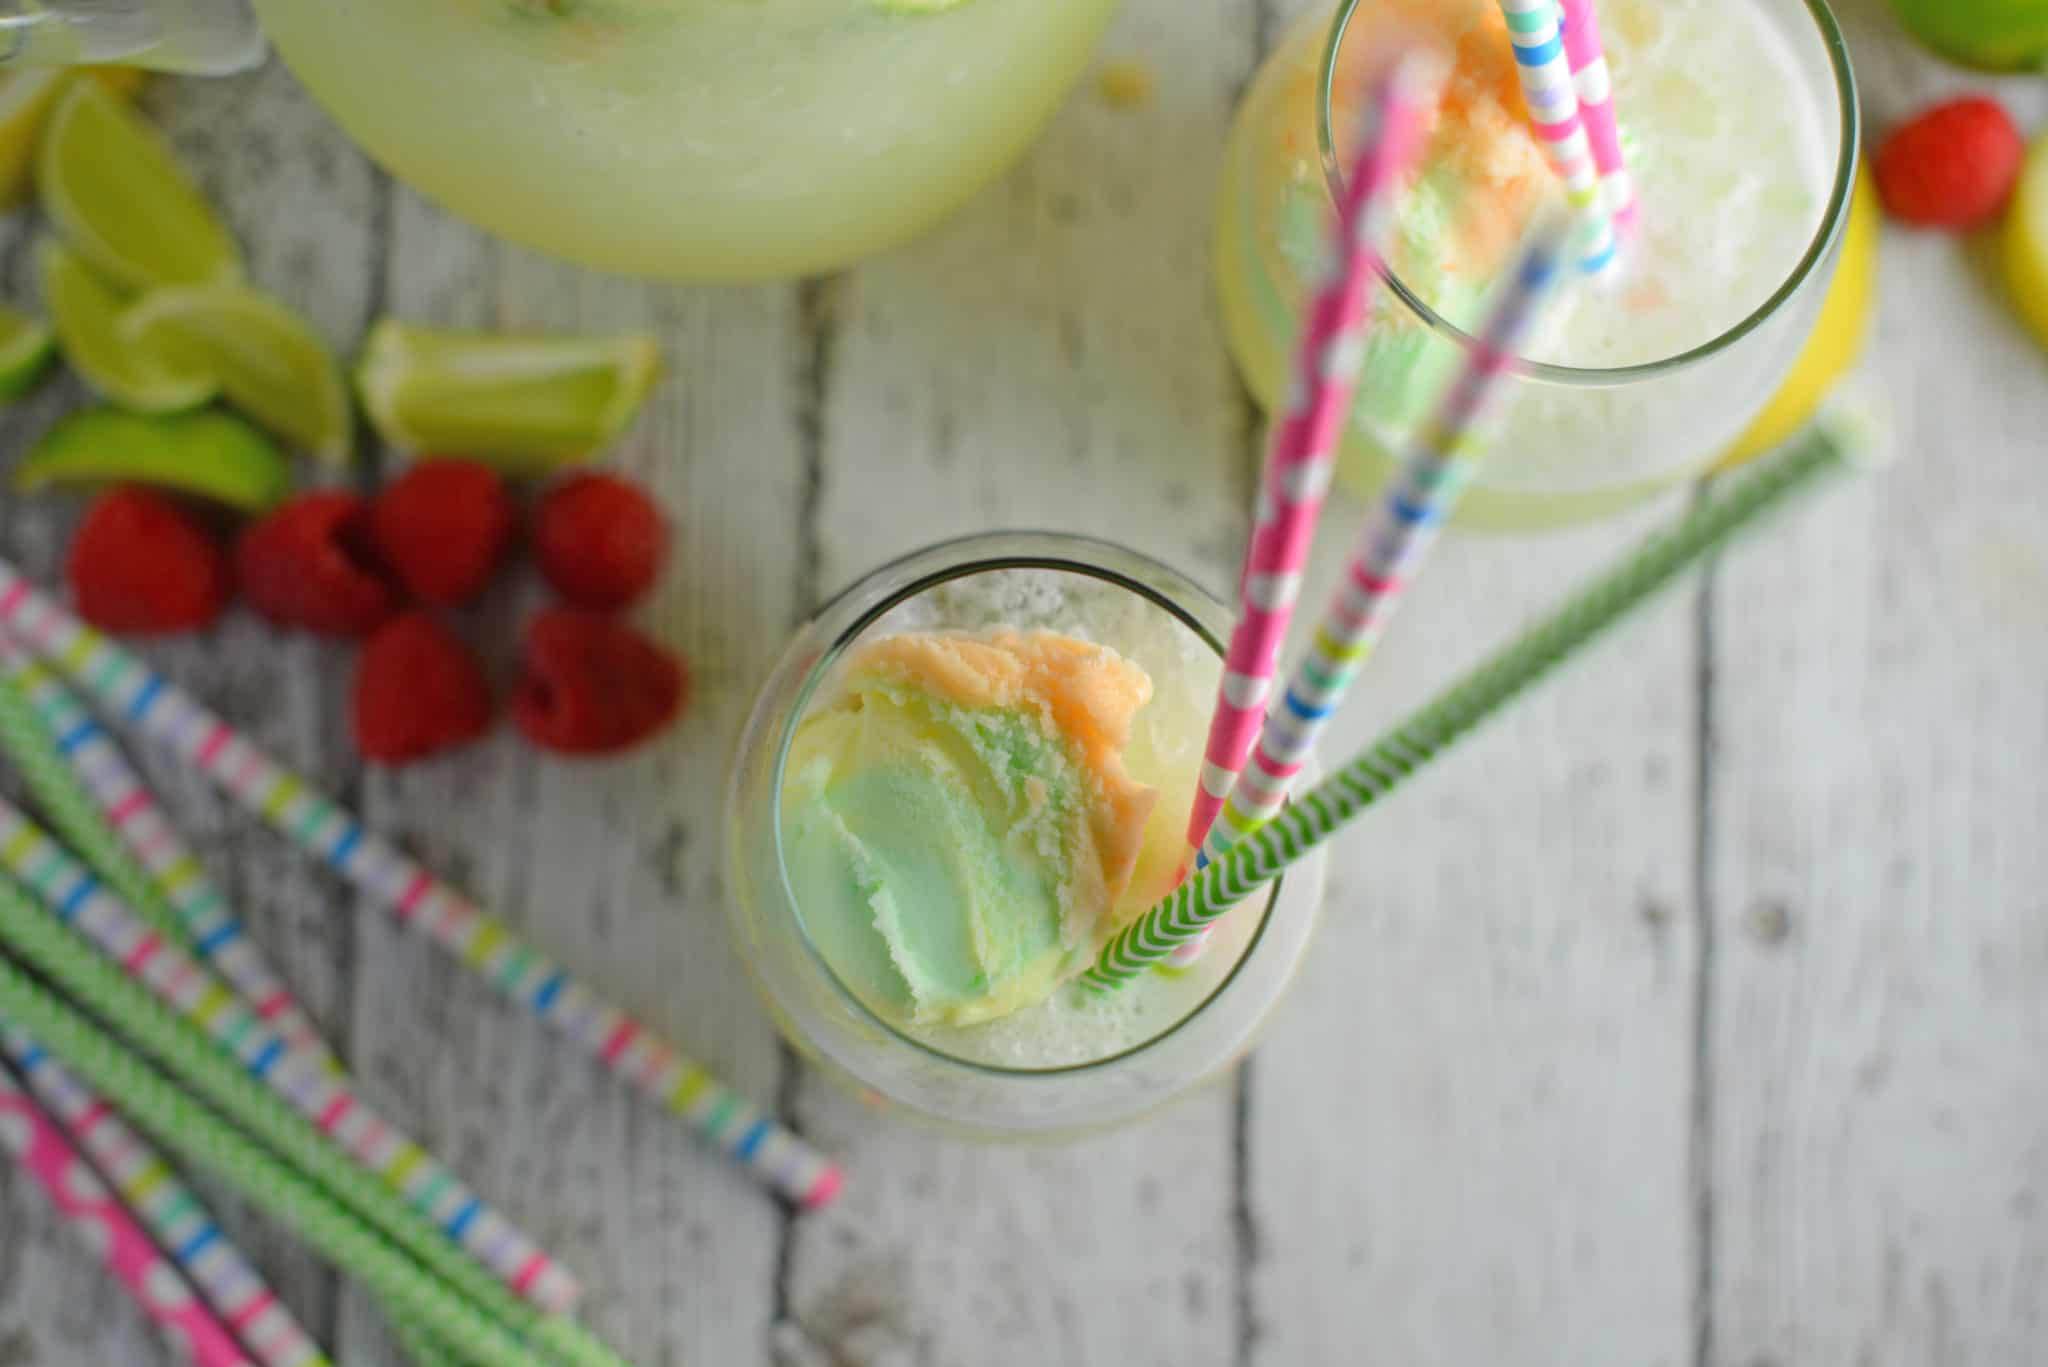 Frozen Limeade Sherbet Floats- a refreshing summer drink perfect for parties and BBQs! Cool limeade blended with ice and topped with a heaping scoop of rainbow sherbet! Perfect for kids, but an adult option available. www.savoryexperiments.com